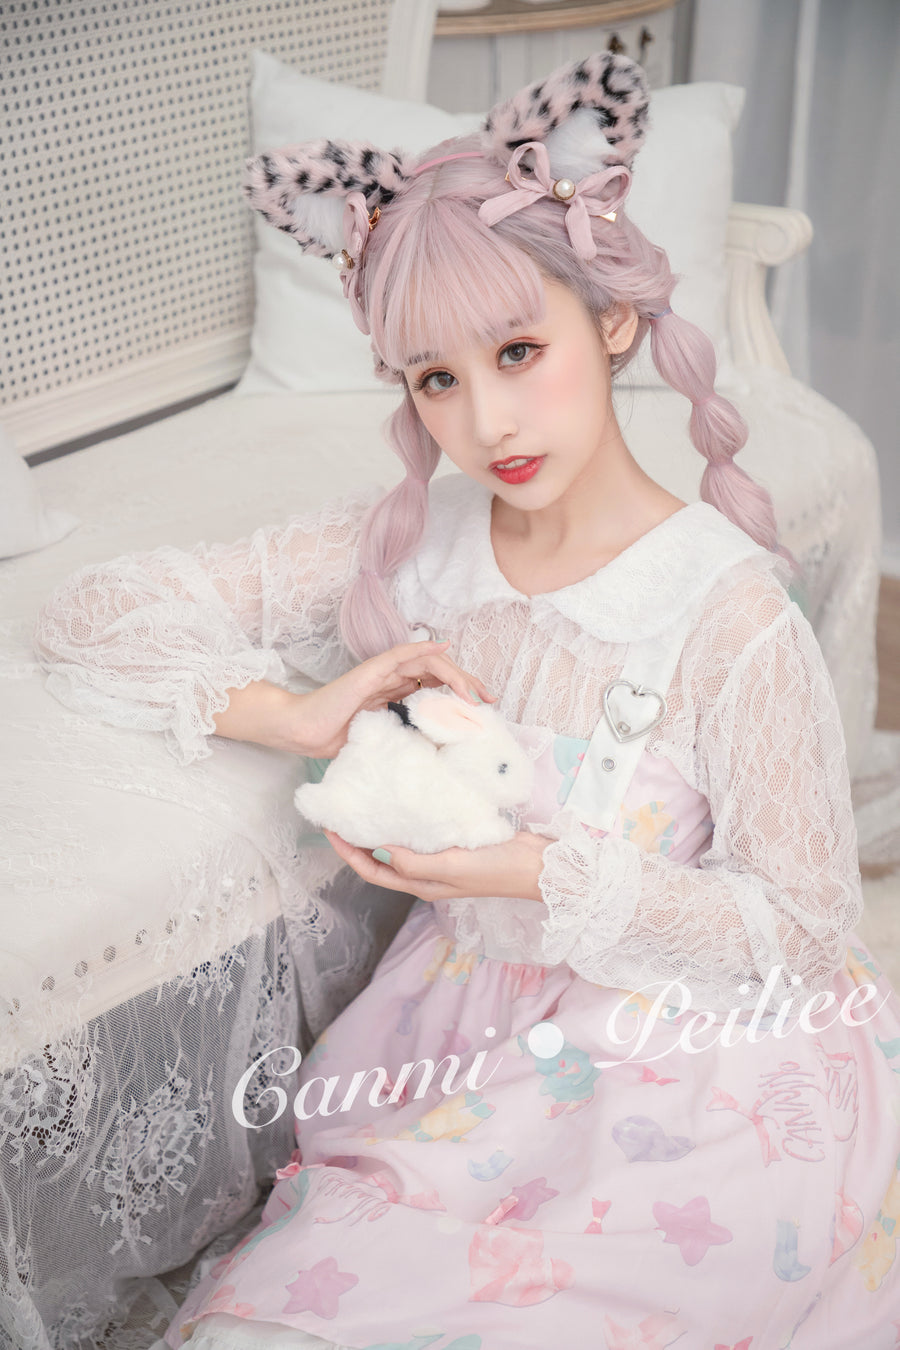 [Canmi Design] For Bear And Bunny Sweet JSK Lolita Dress - Peiliee Shop